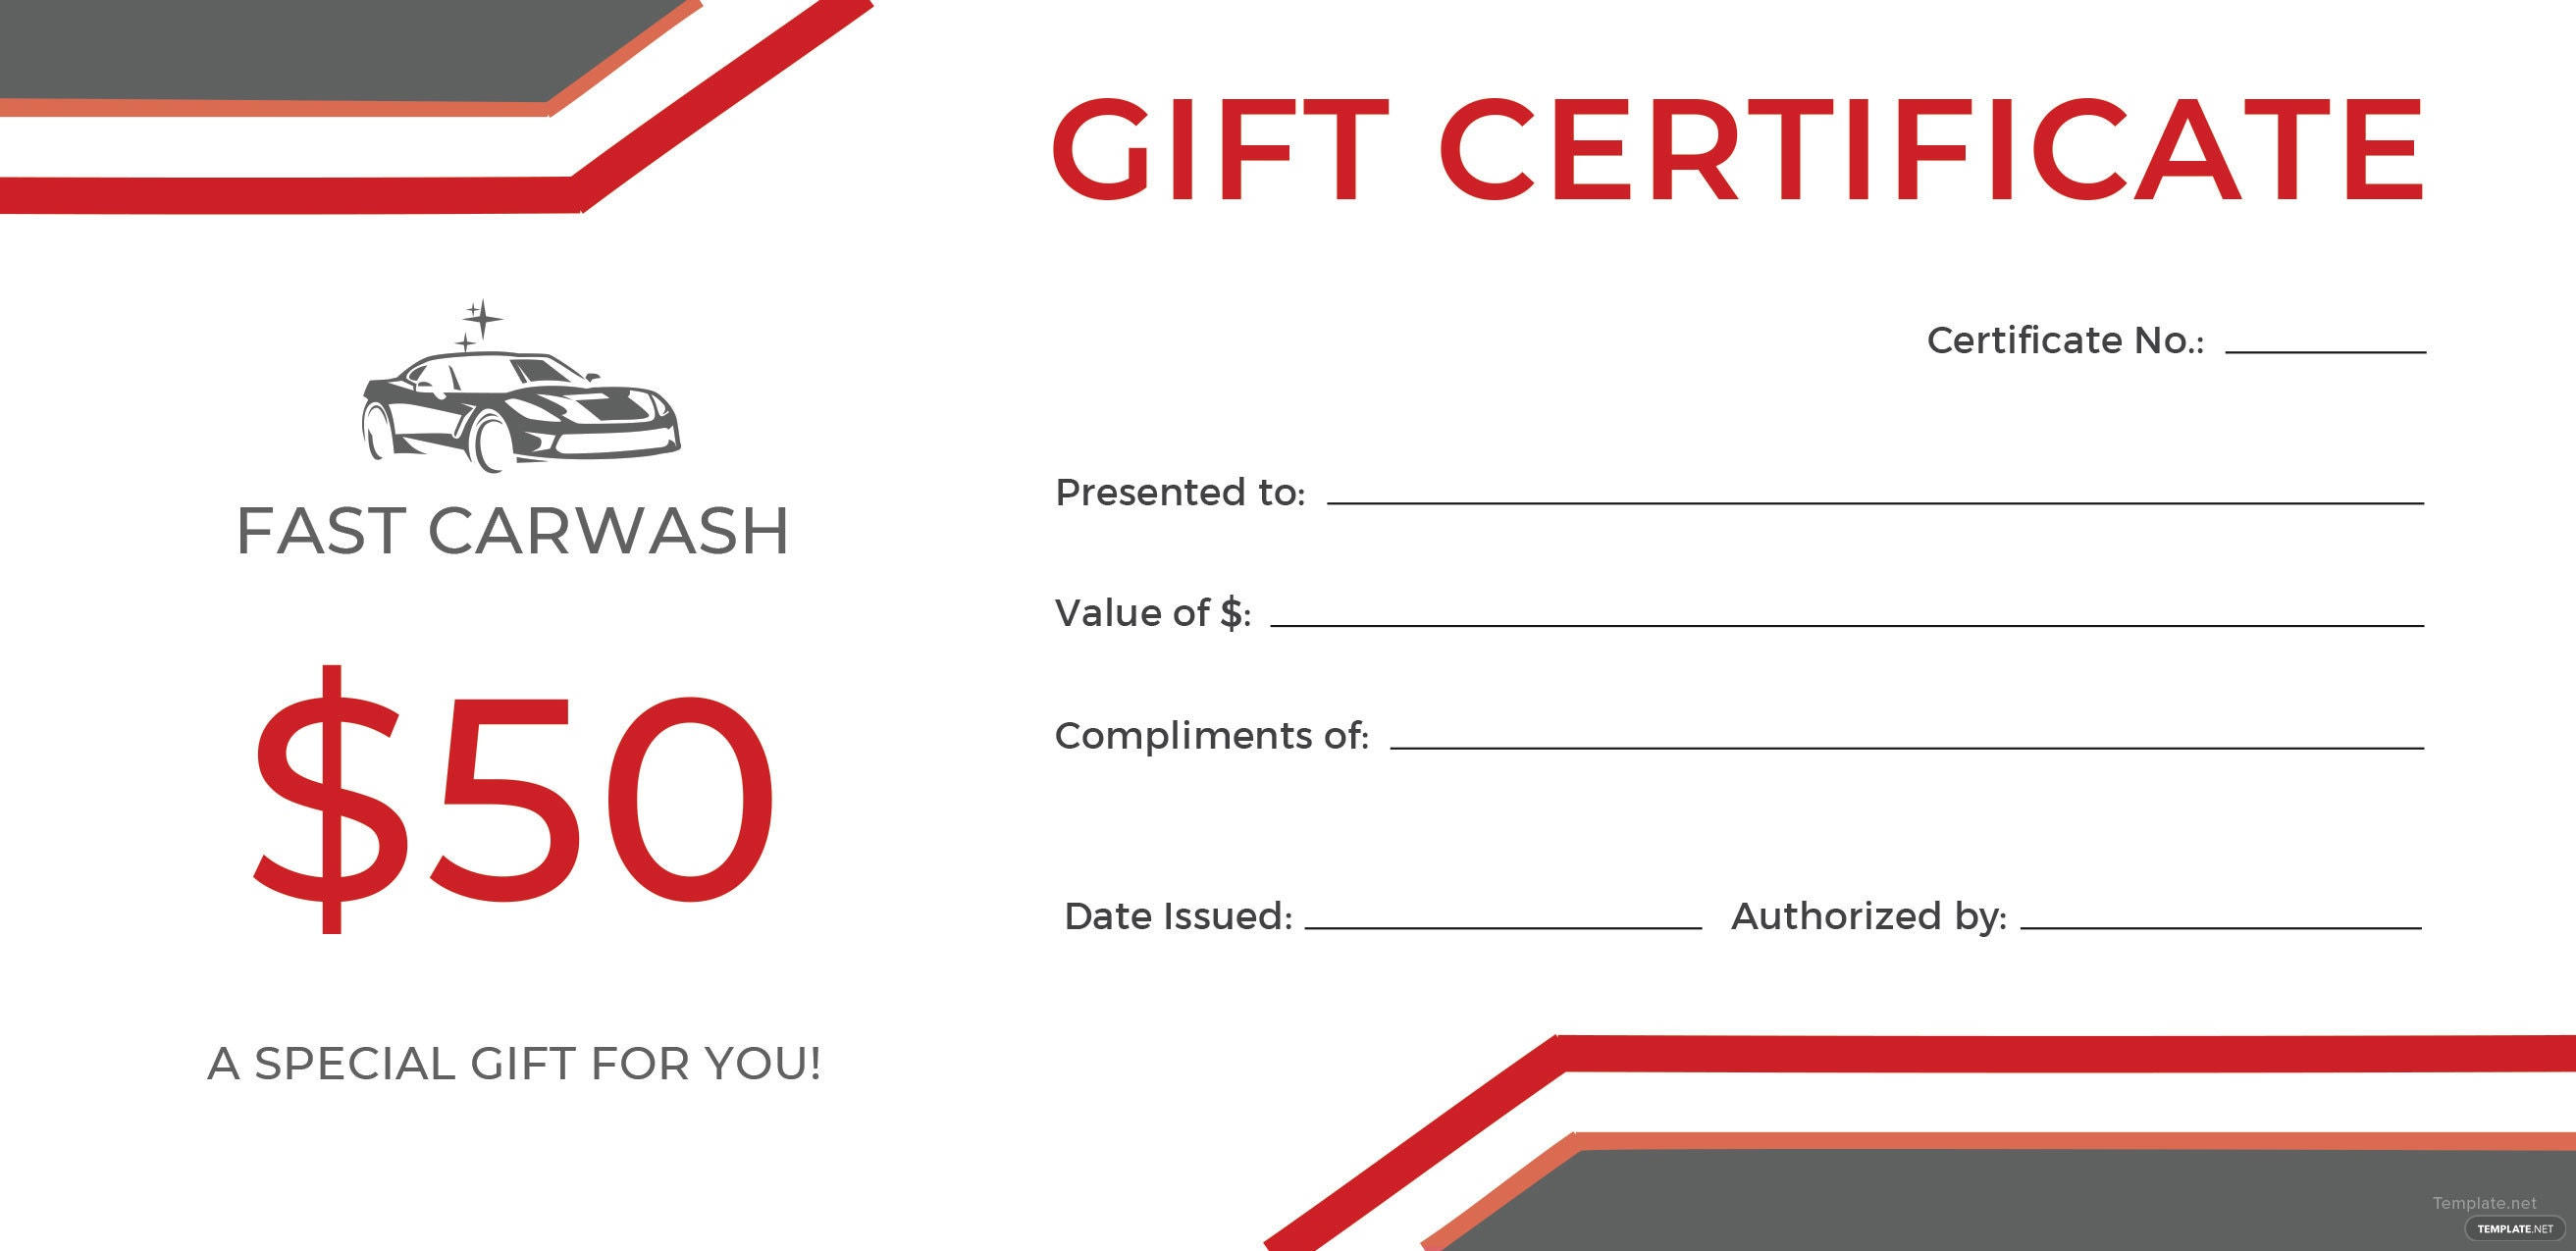 Free carwash gift certificate template in adobe illustrator carwash gift certificate template free download yelopaper Choice Image